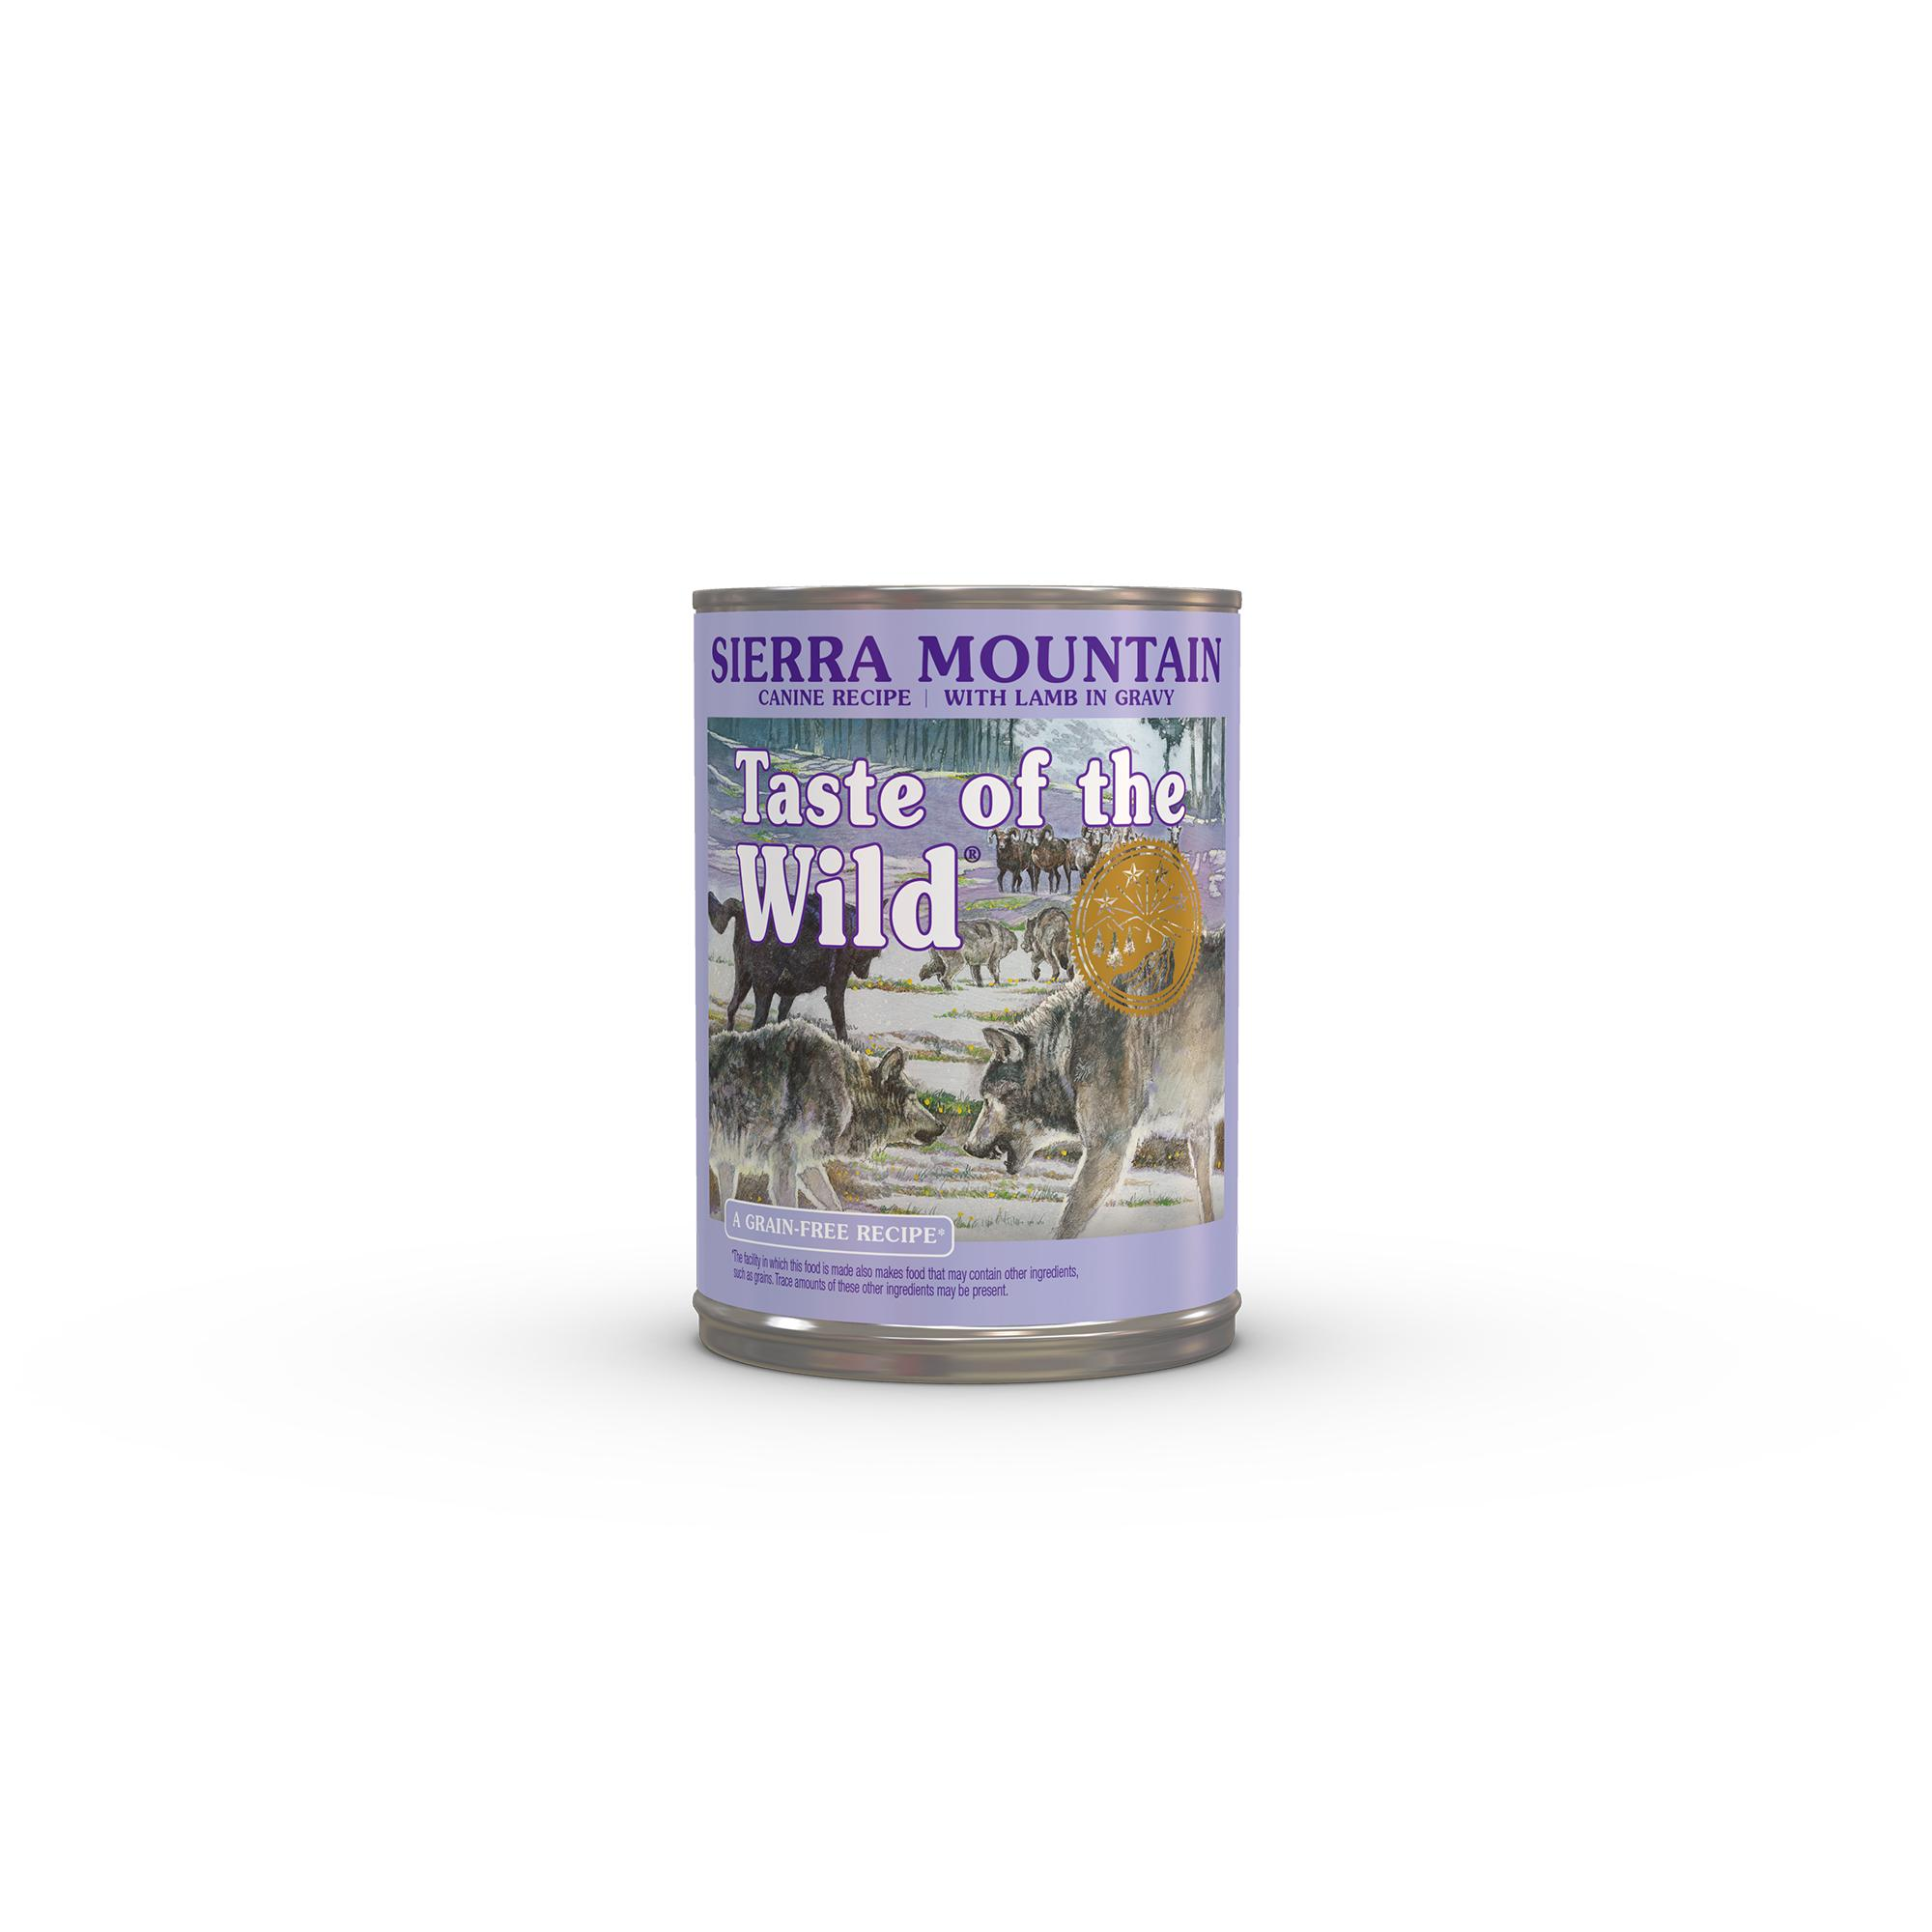 Taste of the Wild Sierra Mountain Grain-Free Canned Dog Food Image